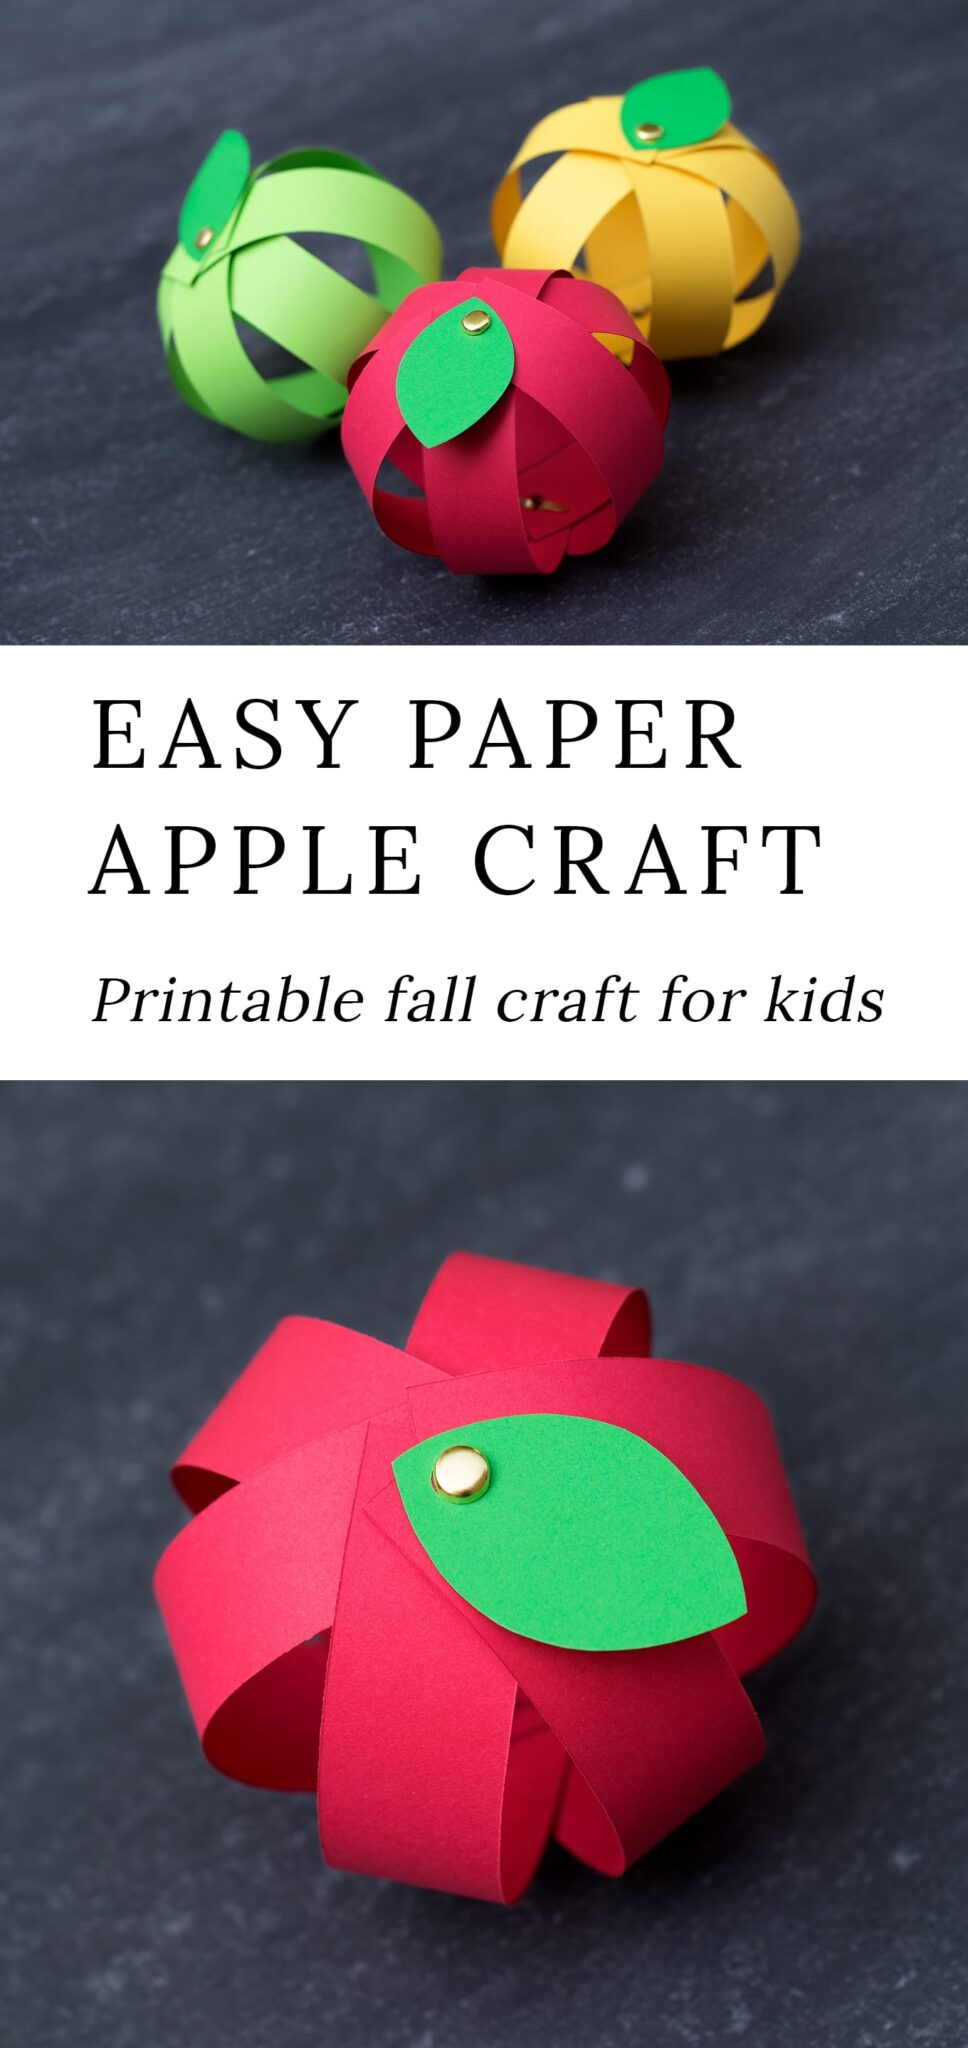 Kids love this easy paper strip apple craft! This simple fall craft includes a free printable template, making it perfect for home or school. #applecrafts #fallcrafts via @firefliesandmudpies